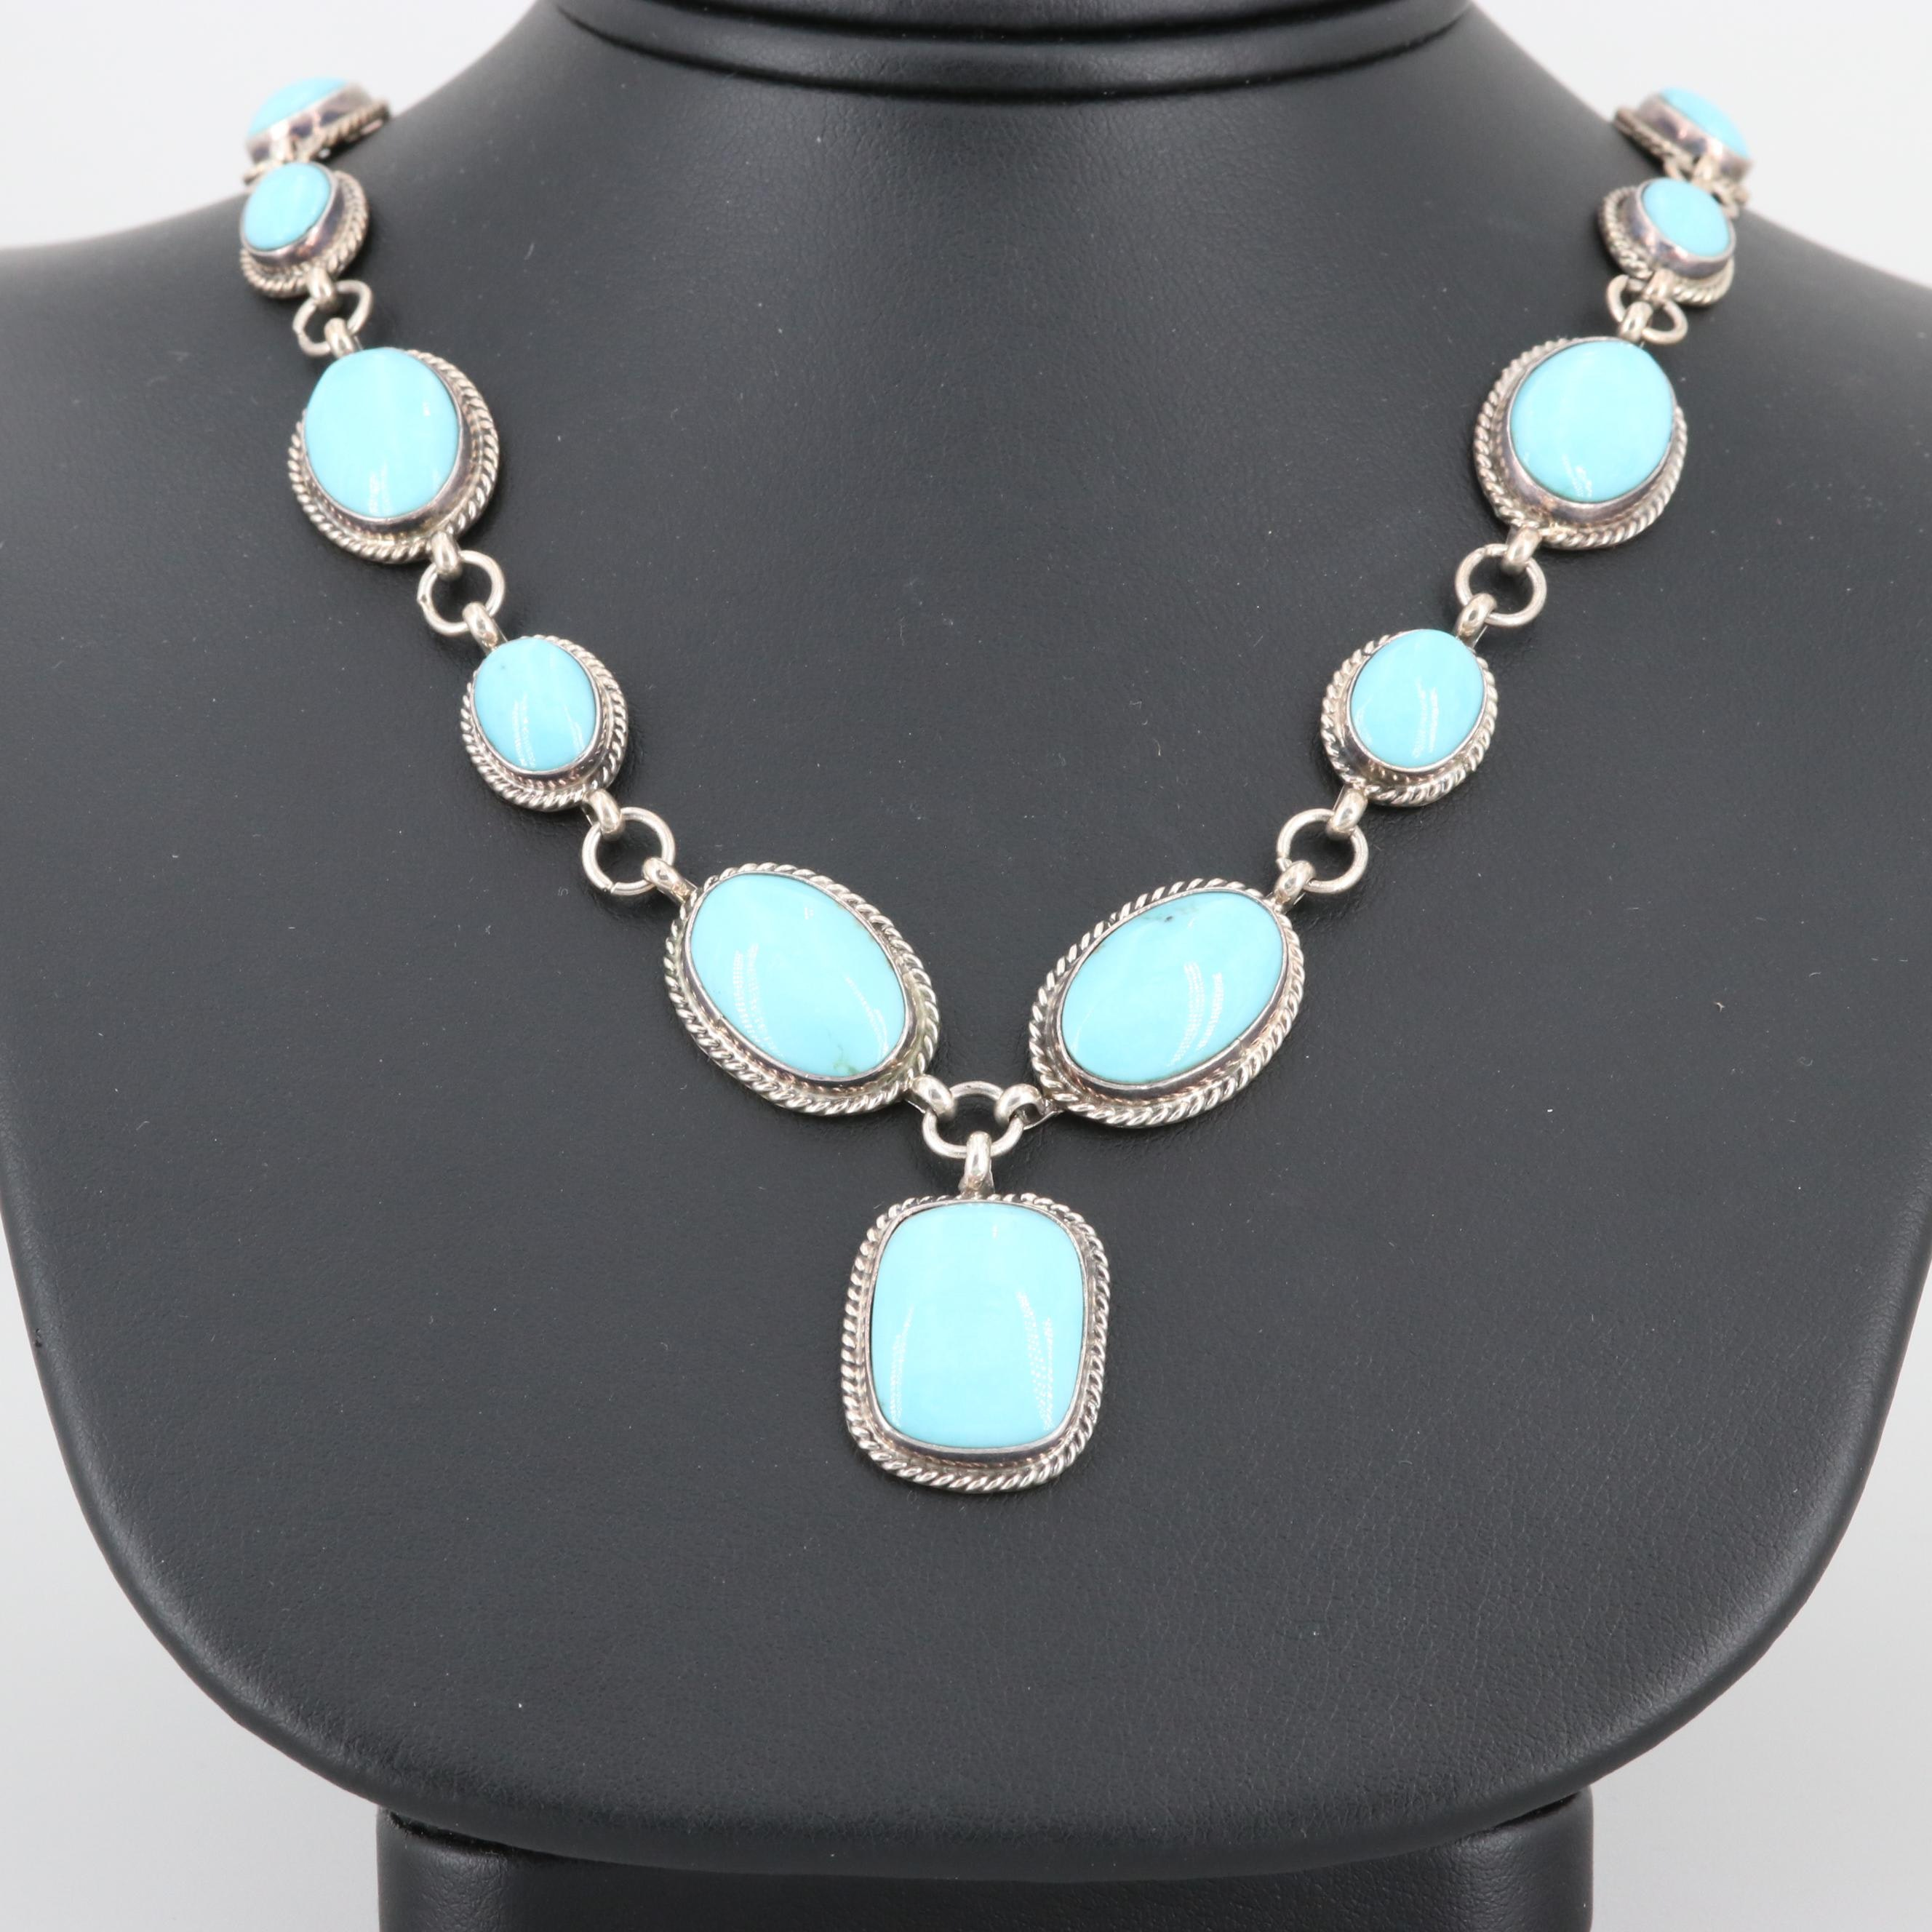 Running Bear Southwest Shop Sterling Silver Turquoise Necklace